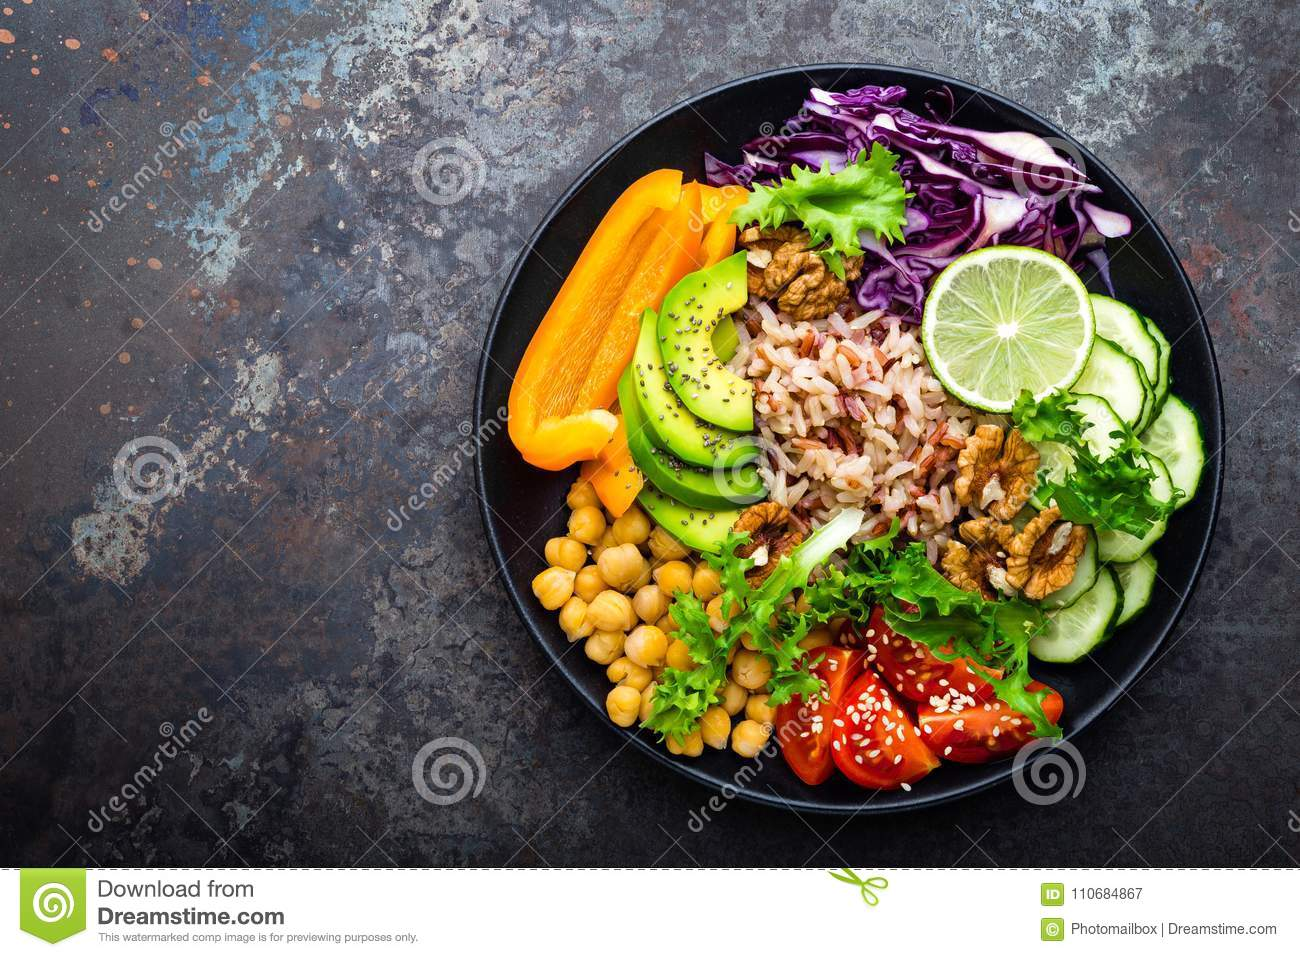 Buddha bowl dish with brown rice, avocado, pepper, tomato, cucumber, red cabbage, chickpea, fresh lettuce salad and walnuts. Healt